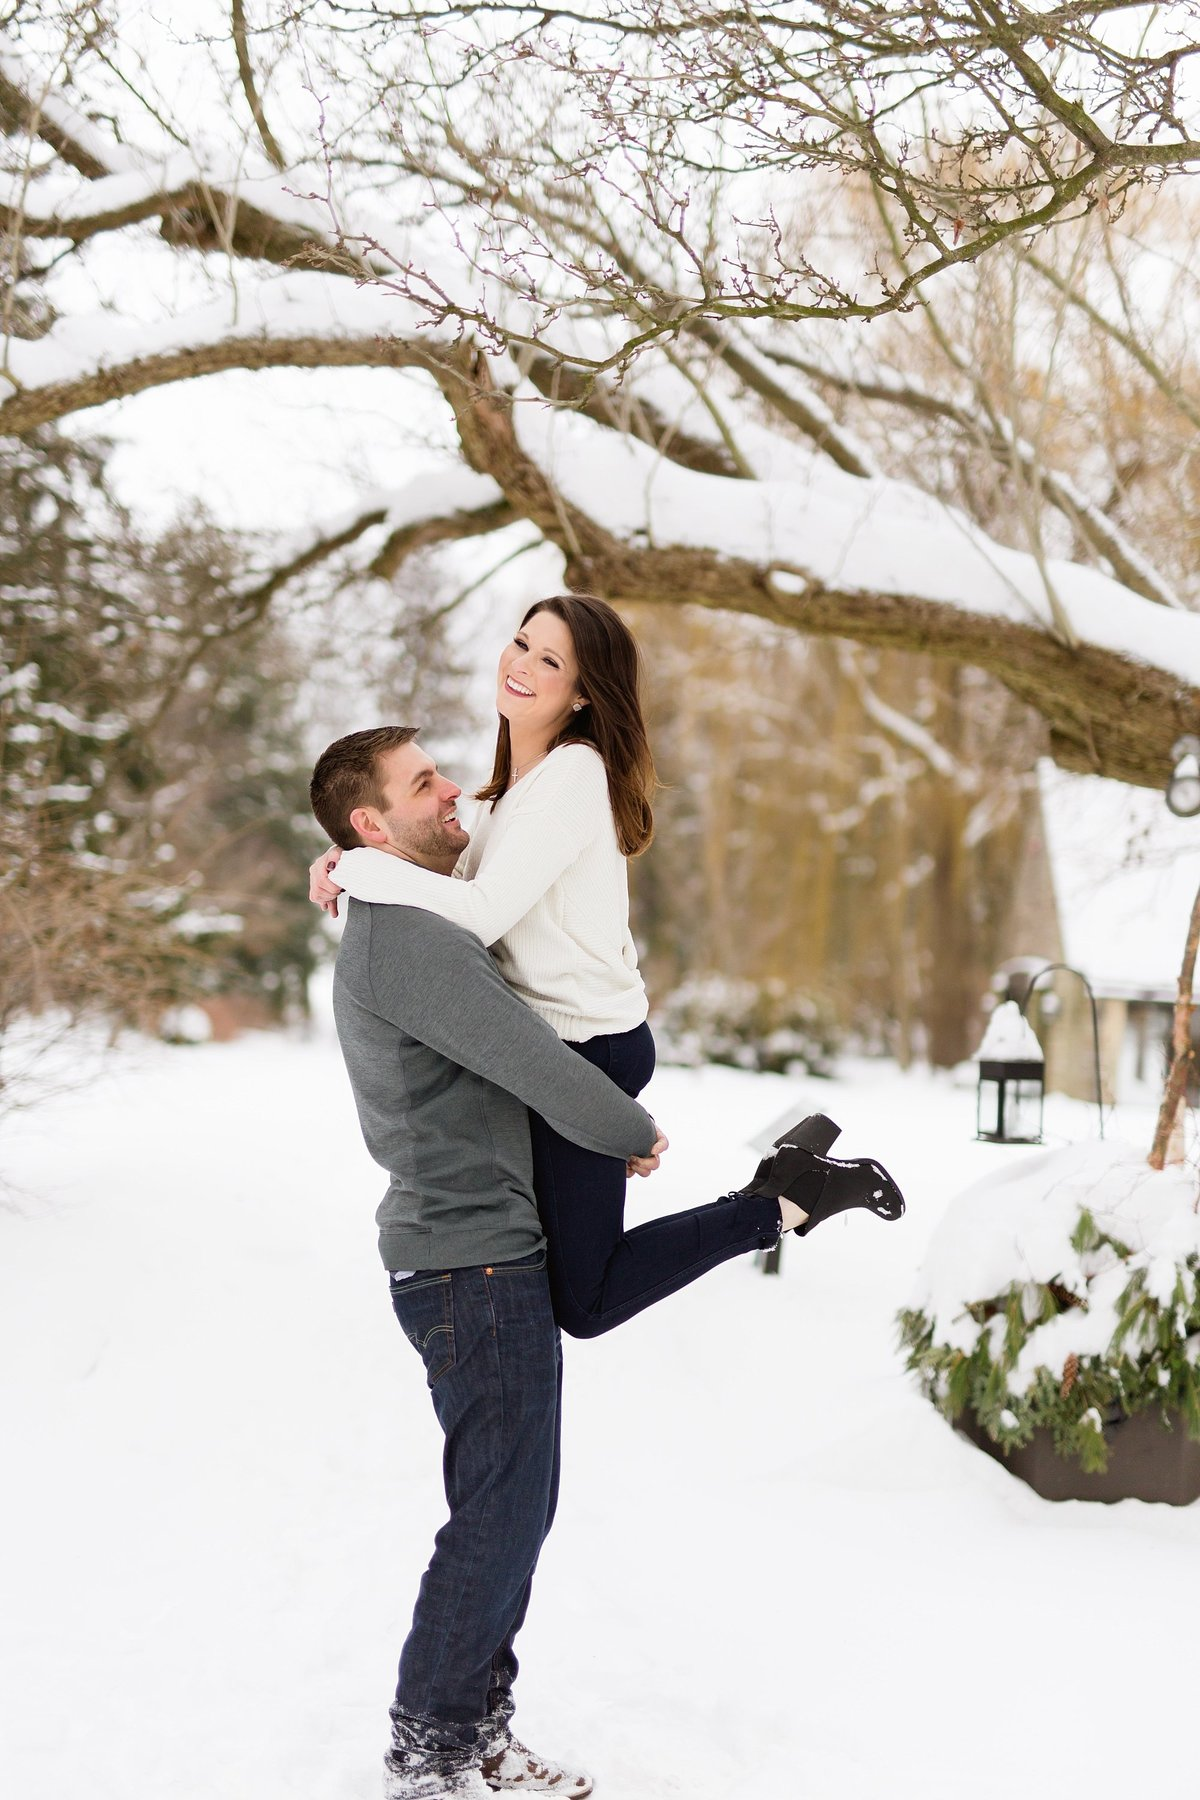 Angela-Blake-Winter-Engagement-Edsel-Eleanor-Ford-House-Breanne-Rochelle-Photography30